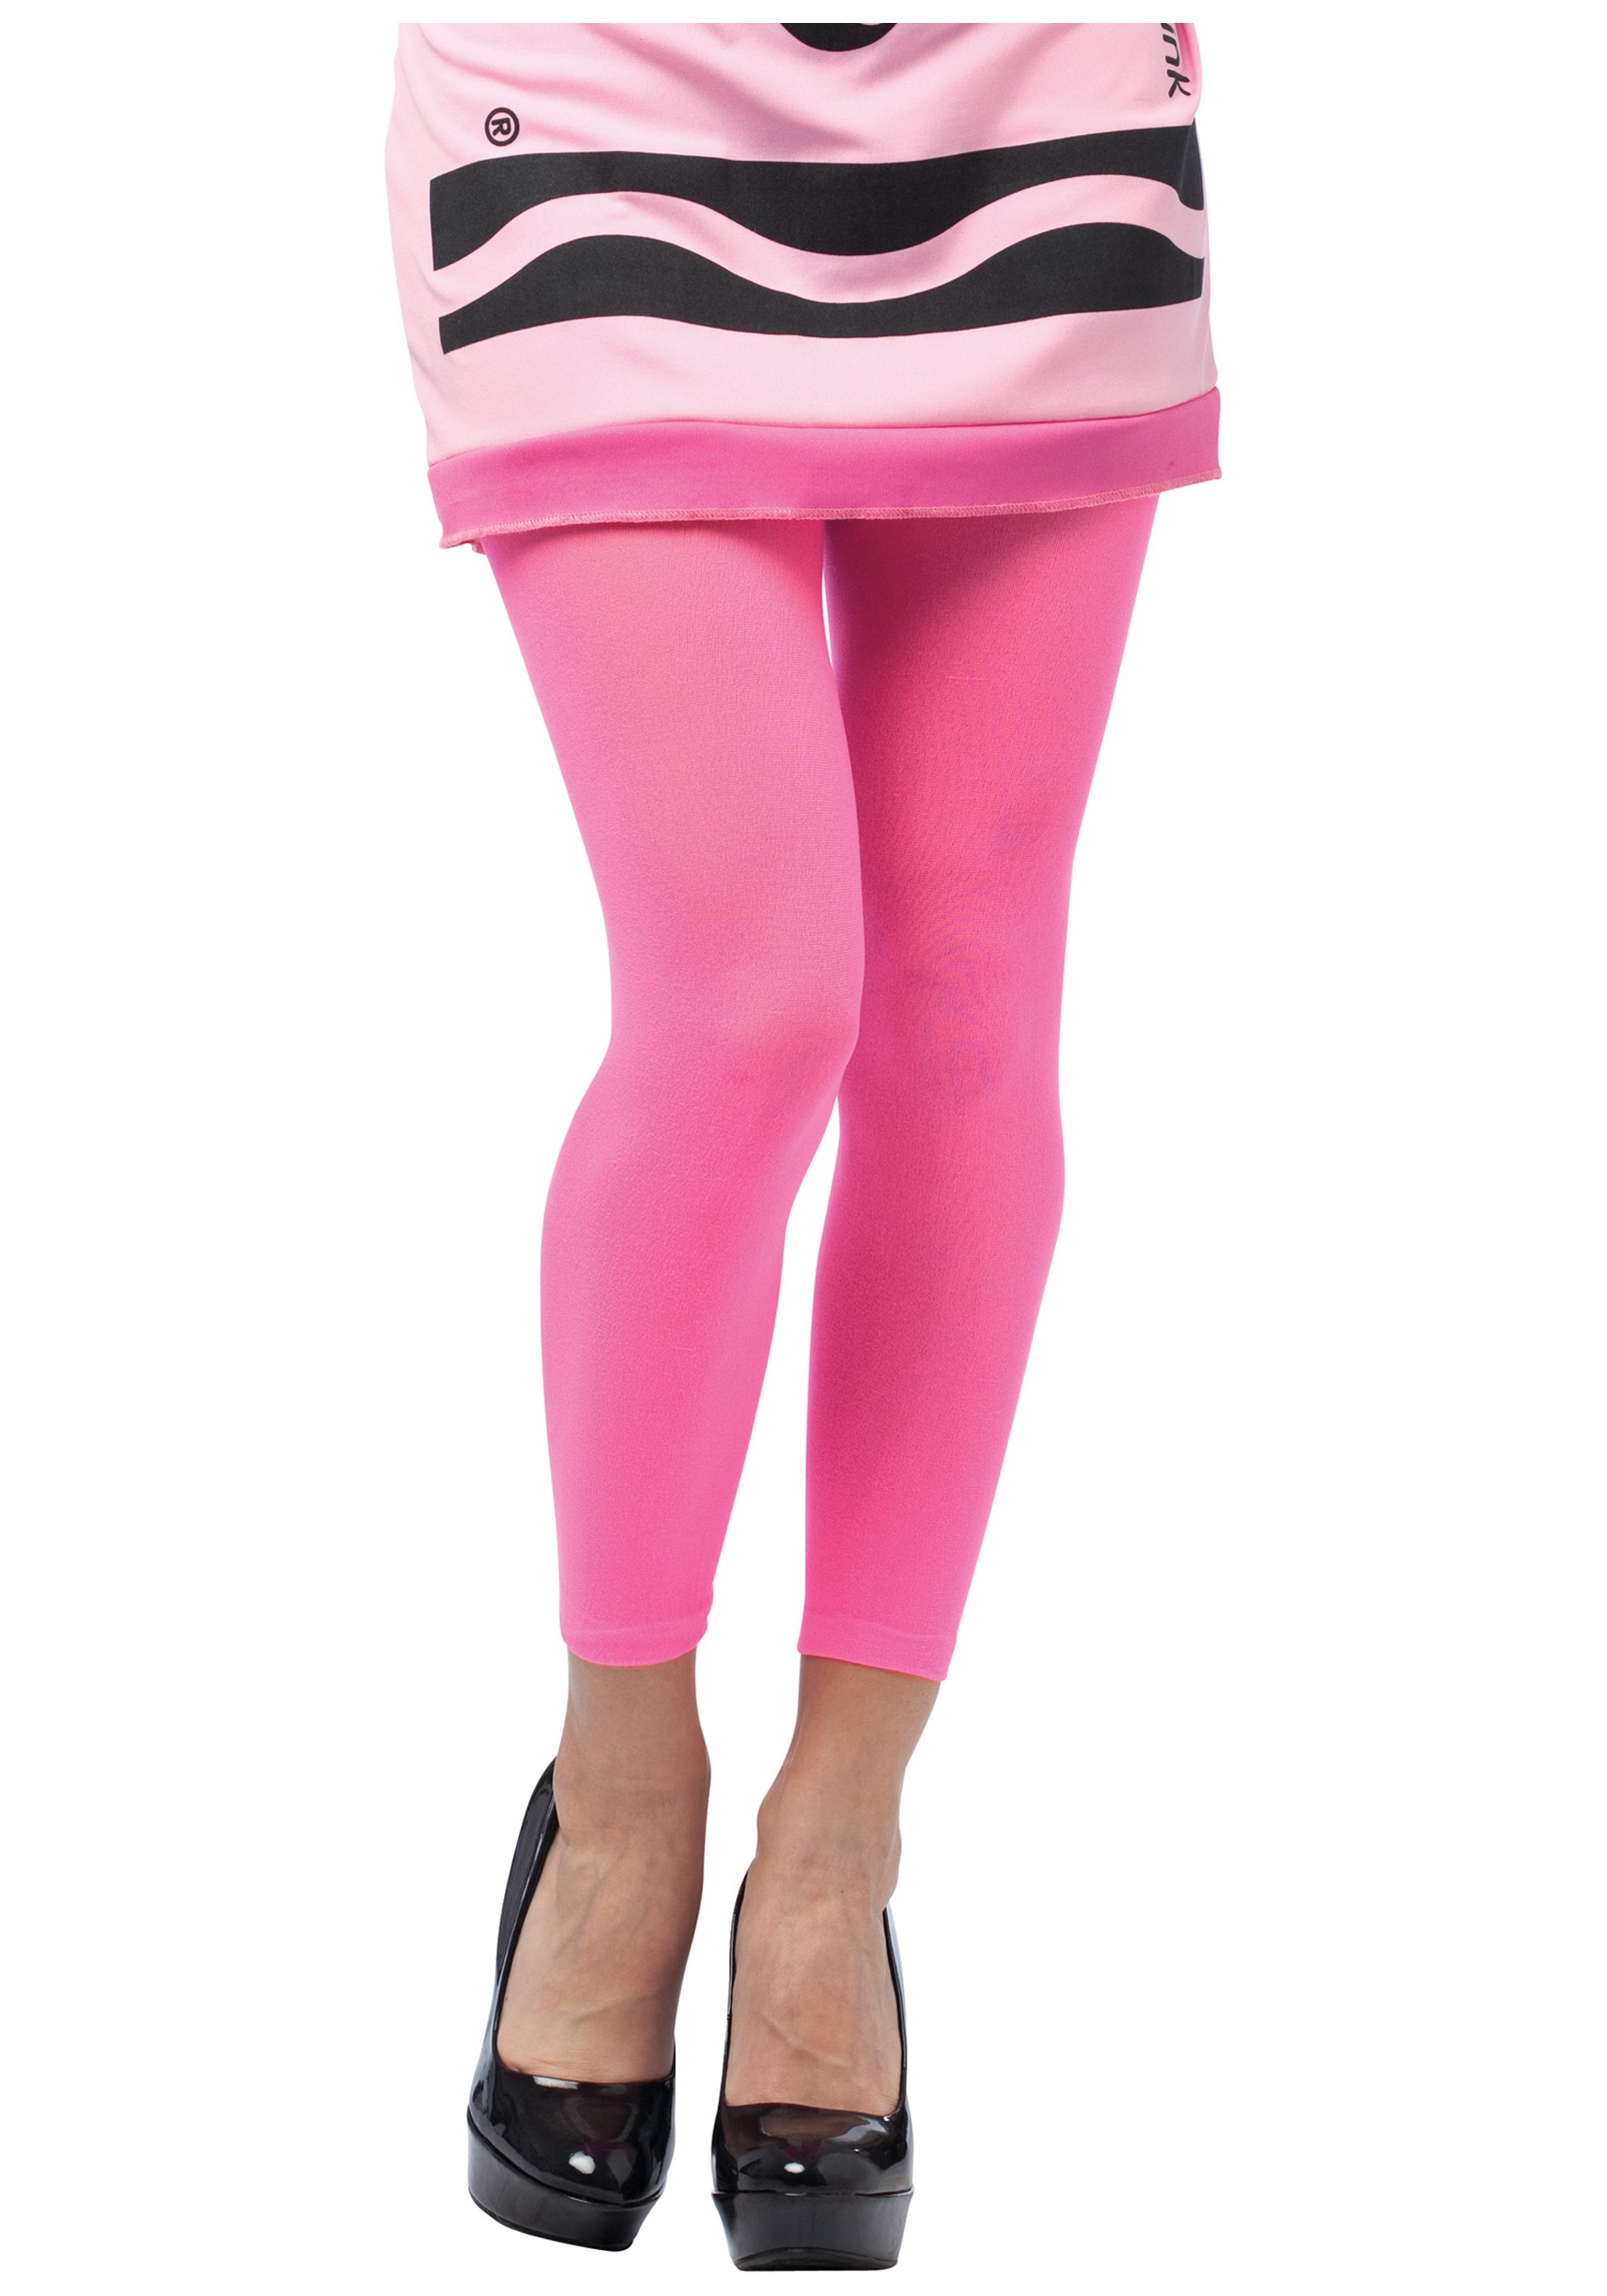 Shop for womens pink tights online at Target. Free shipping on purchases over $35 and save 5% every day with your Target REDcard.